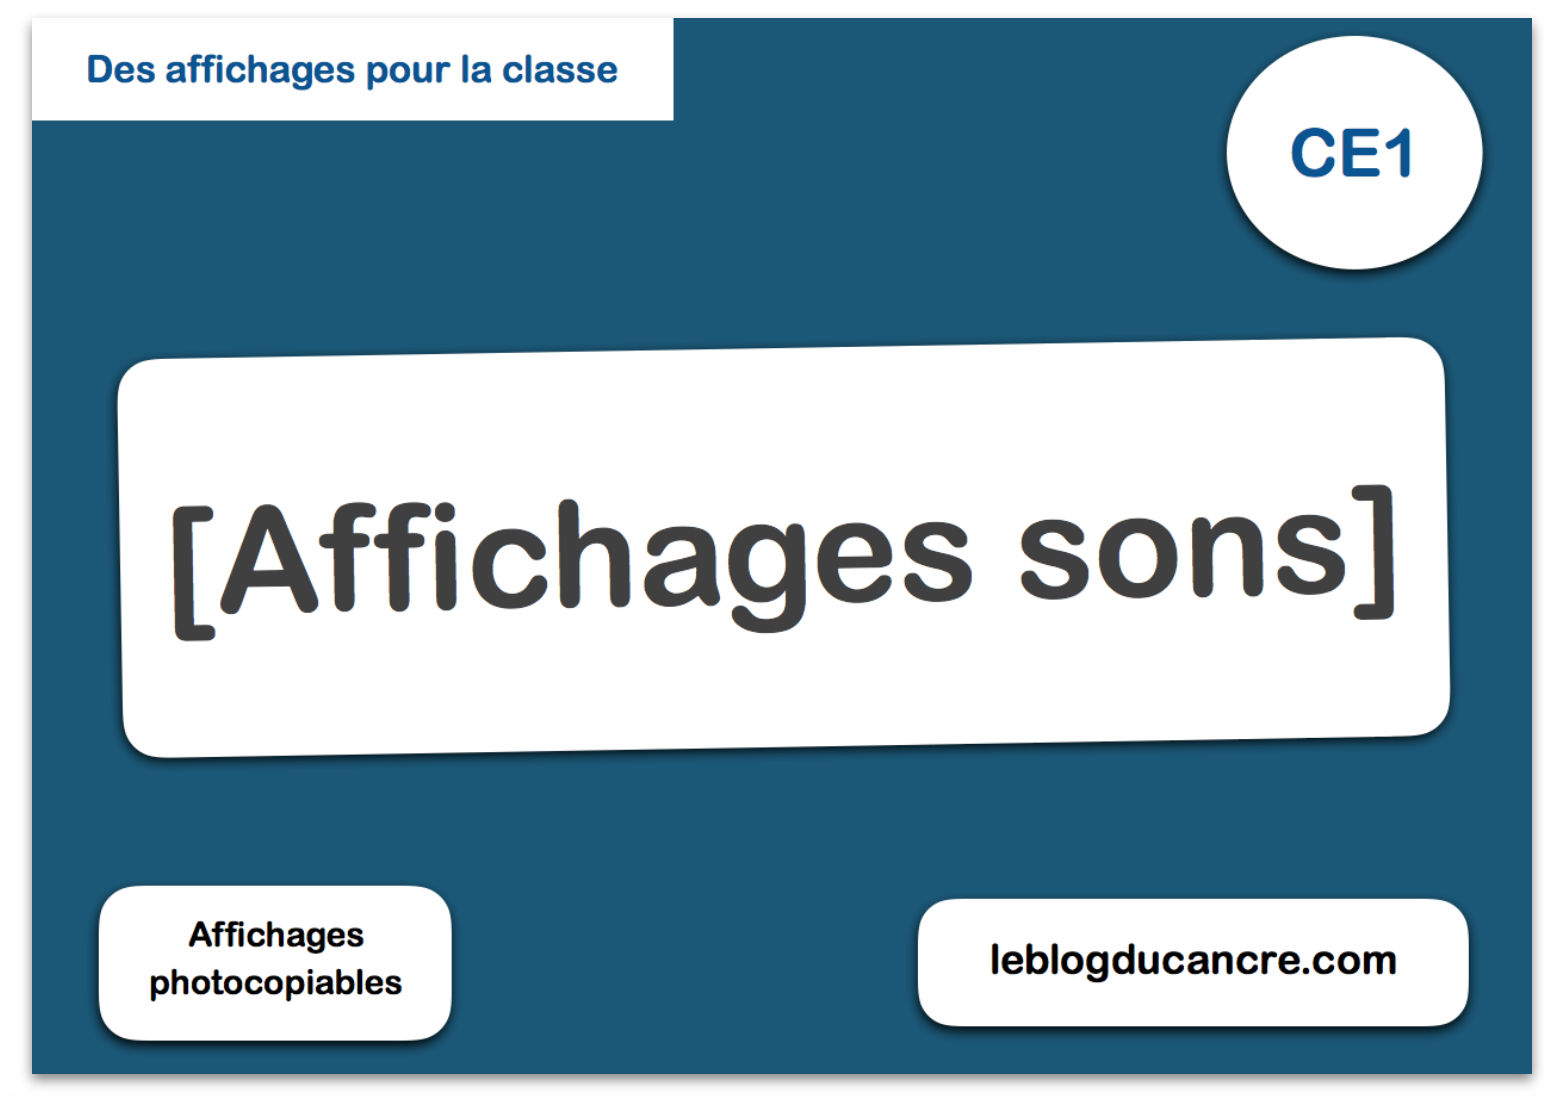 Affichages sons